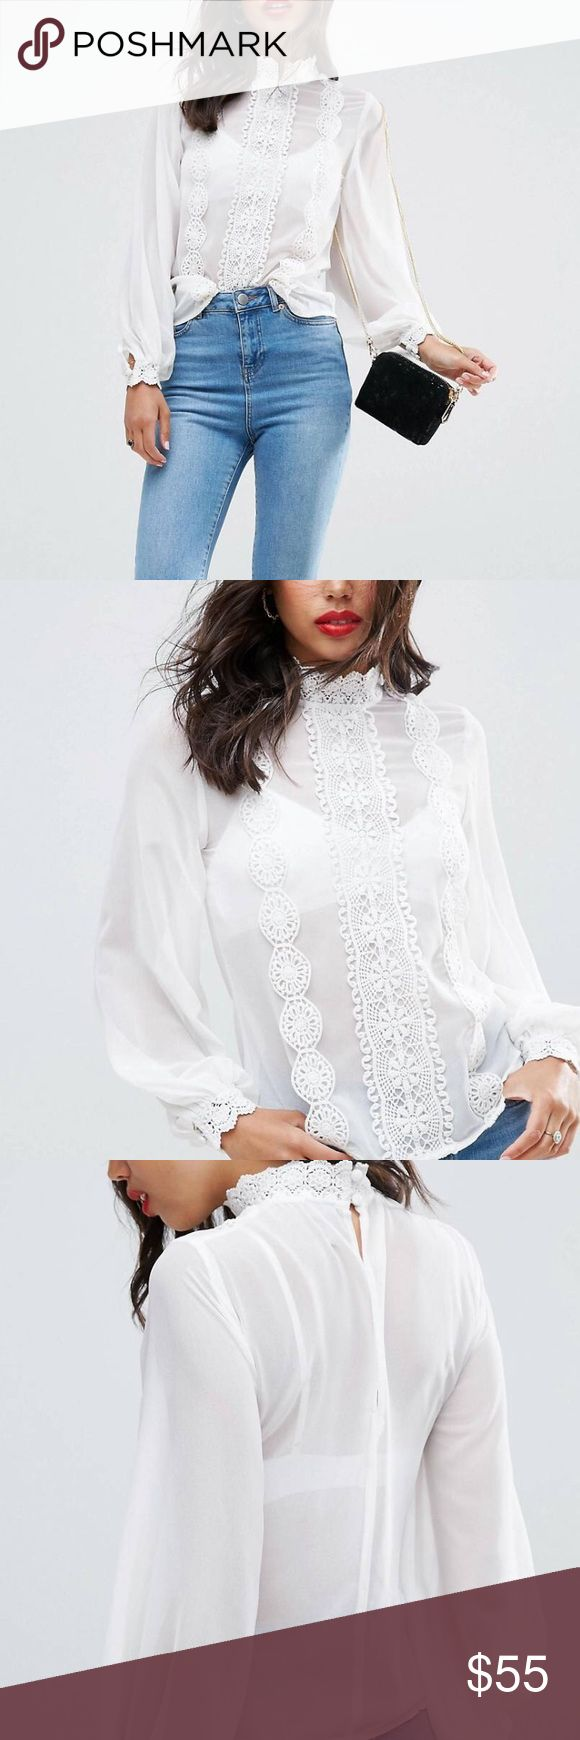 ASOS High Neck Sheer Blouse with Lace Trims Gorgeous White sheer blouse, perfect to wear casual or dress it up! ✨✨✨ ASOS Tops Blouses